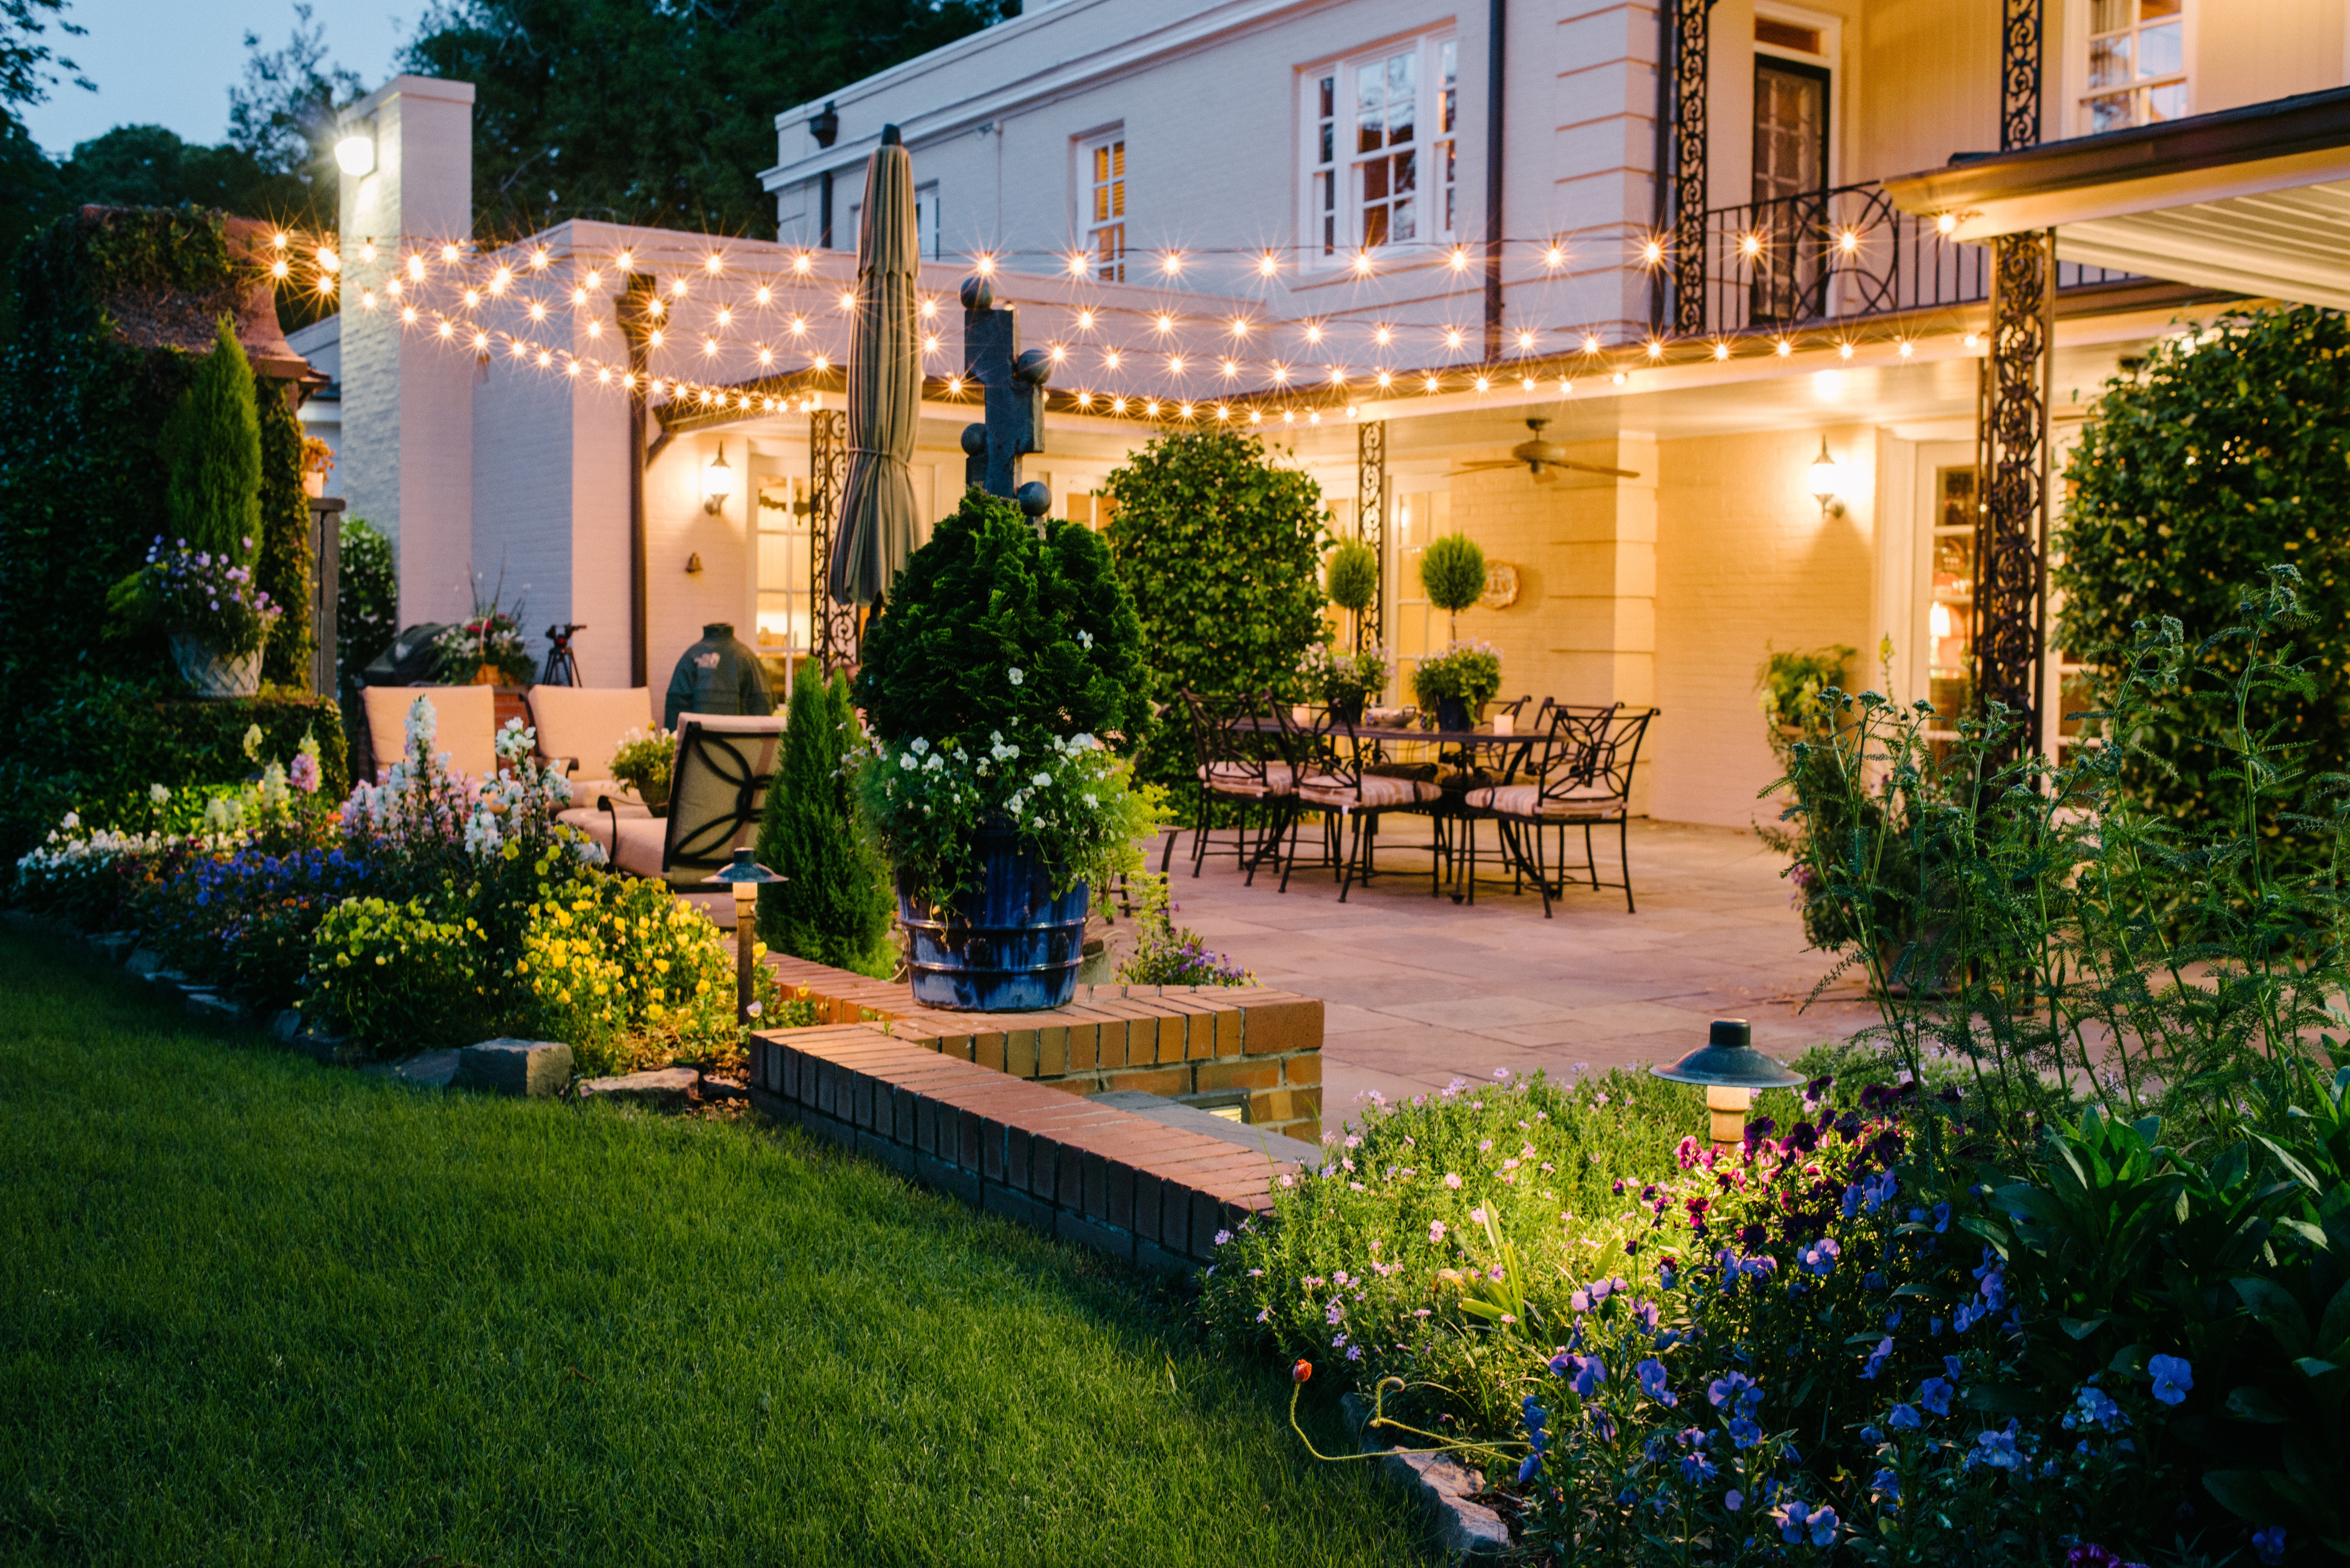 North Fort Worth Patio And Deck Lighting From Outdoor Lighting For throughout Outdoor Lanterns for Deck (Image 15 of 20)